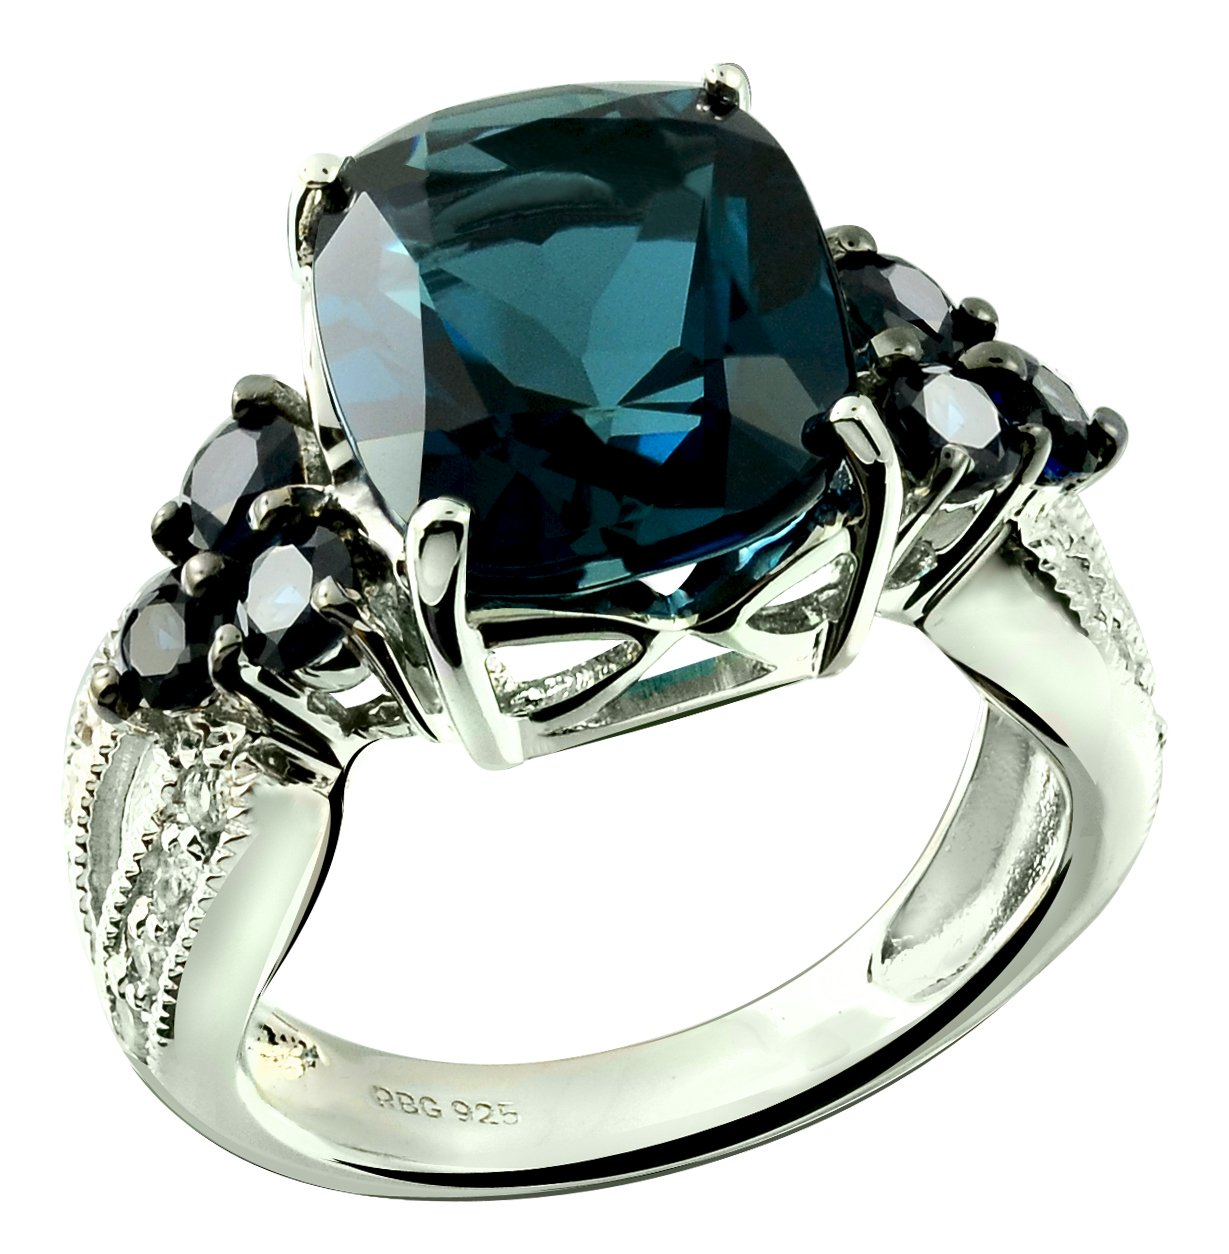 Sterling Silver 925 Ring GENUINE LONDON BLUE TOPAZ and BLUE SAPPHIRE 7.62 Cts with RHODIUM-PLATED Finish (8, london-blue-topaz) by RB Gems